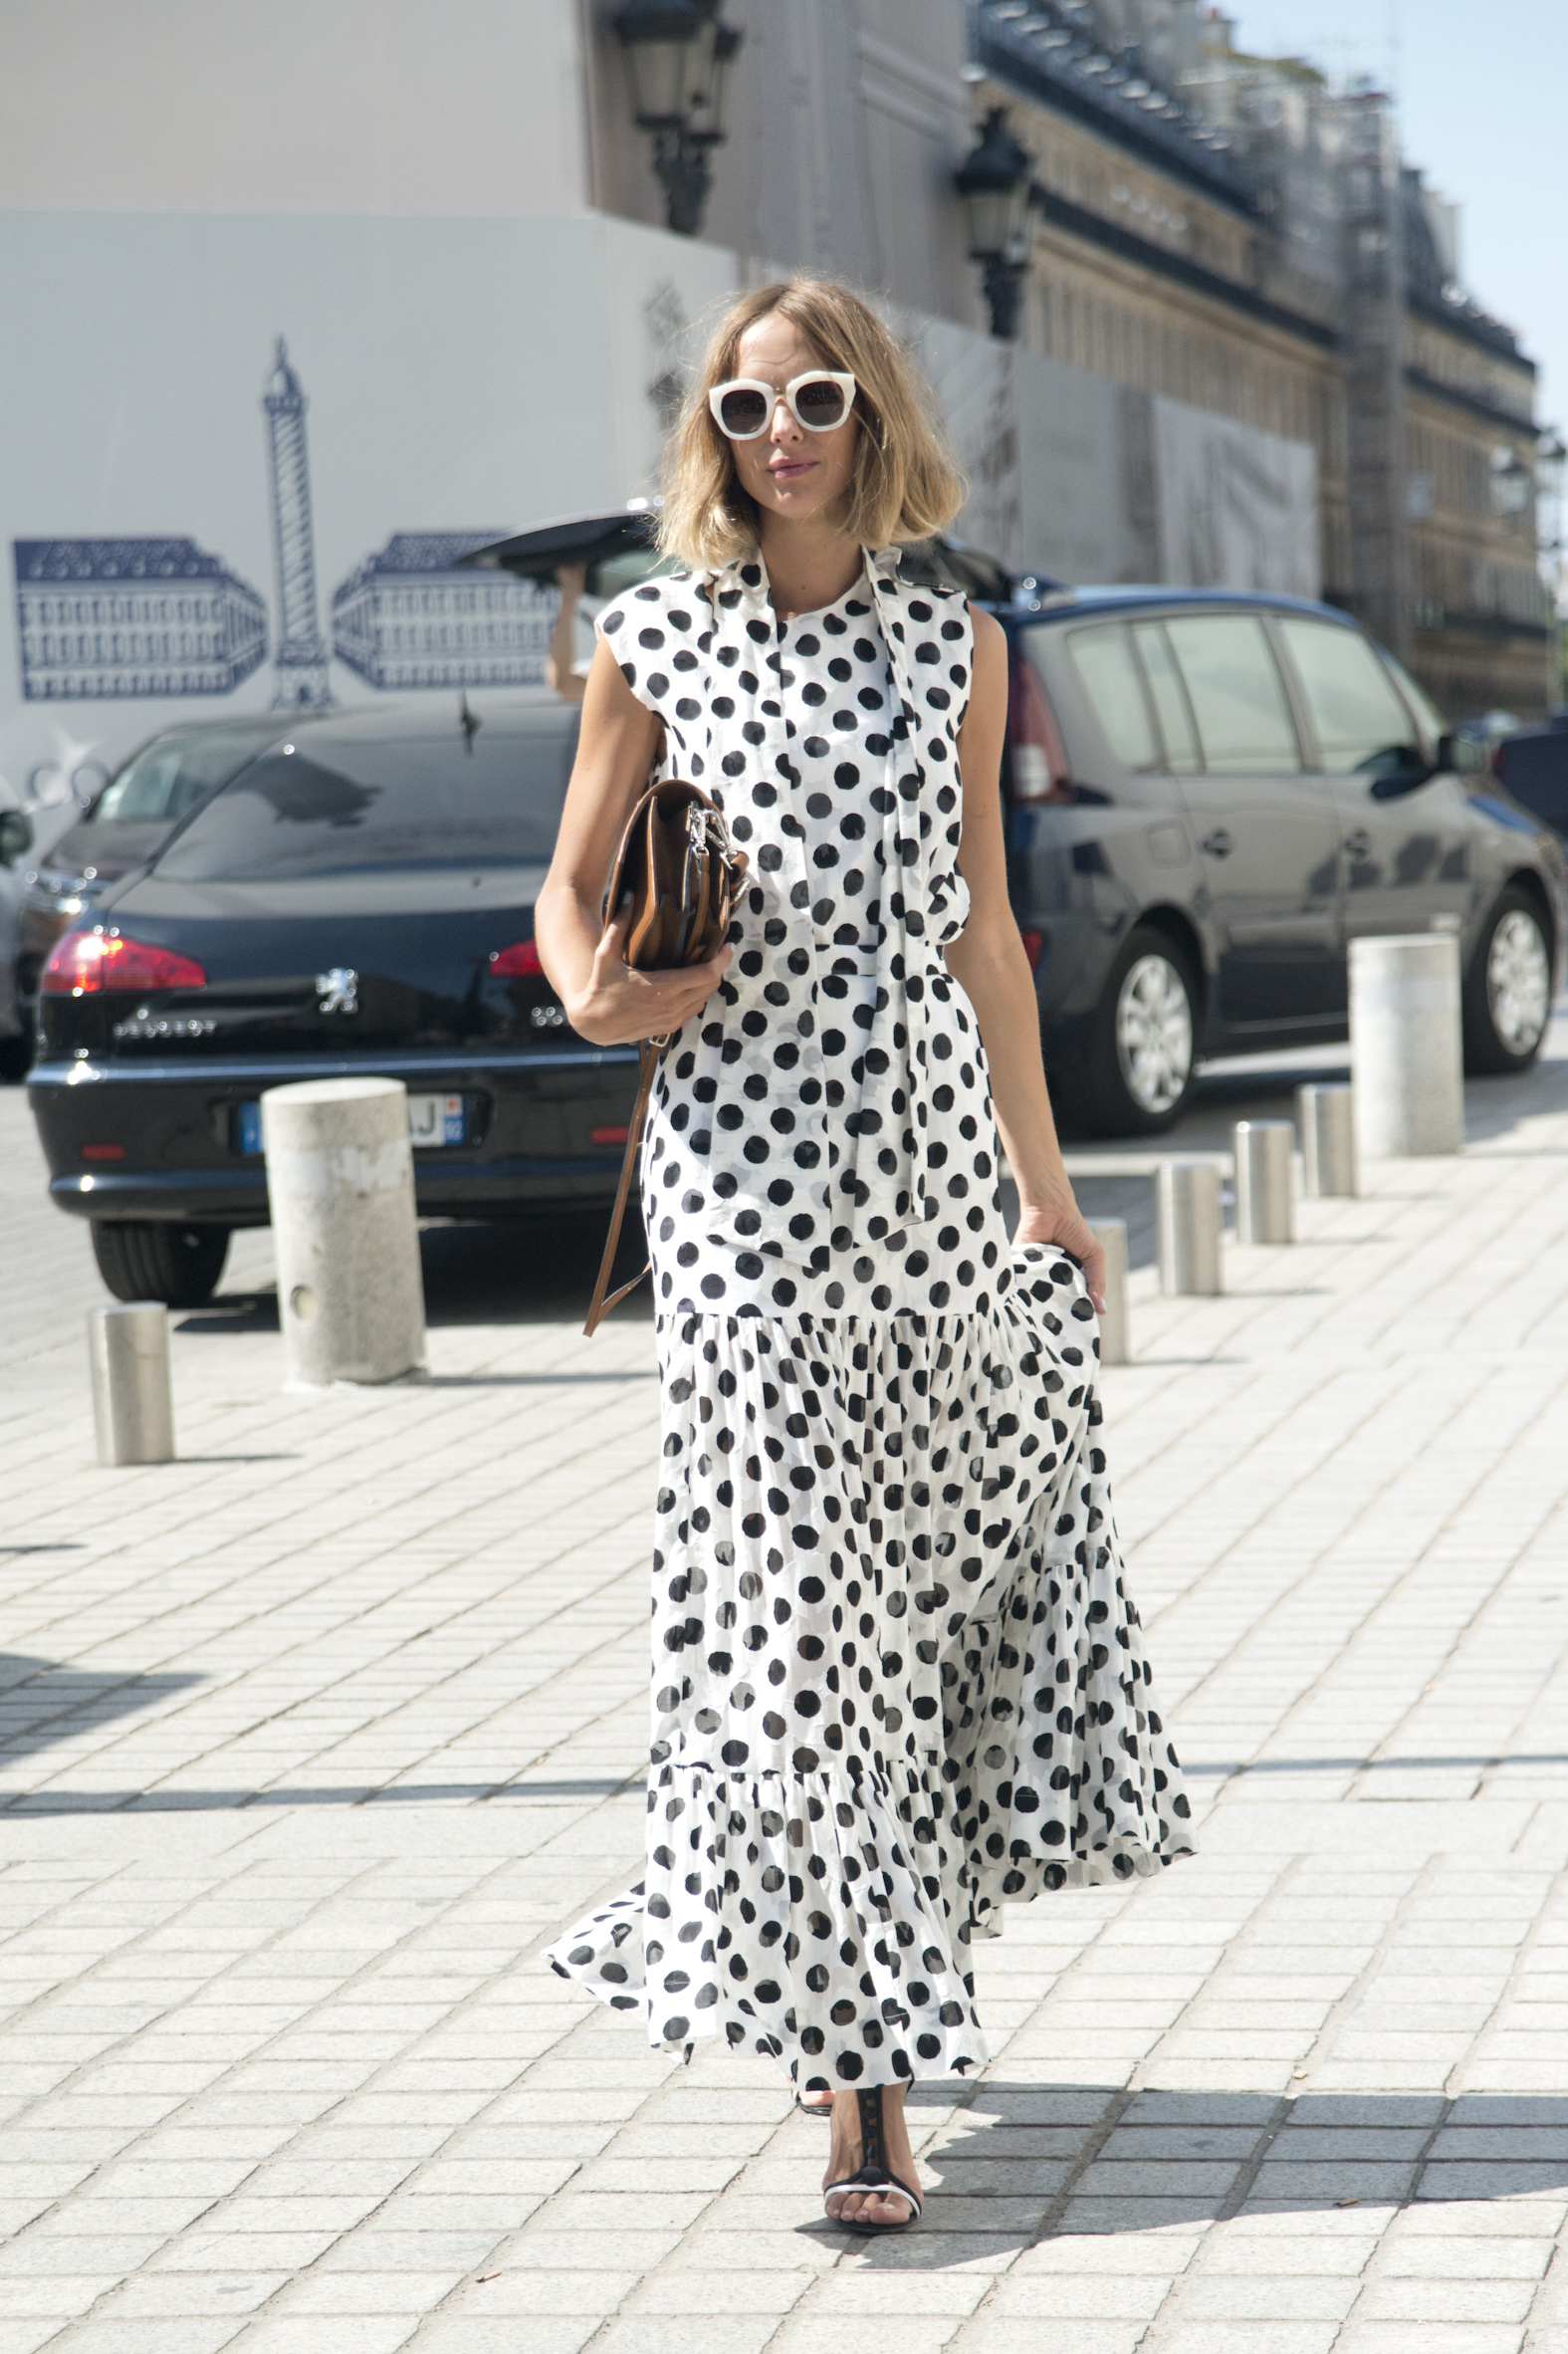 PARIS, FRANCE - JULY 6: Fashion Blogger Candela Novembre wears an Antonio Marras dress, Sergio Rossi shoes, MSGM bag and Spektre sunglasses on day 2 of Paris Fashion Week Haute Couture Autumn/Winter 2015 on July 6, 2015 in Paris, France. (Photo by Kirstin Sinclair/Getty Images)